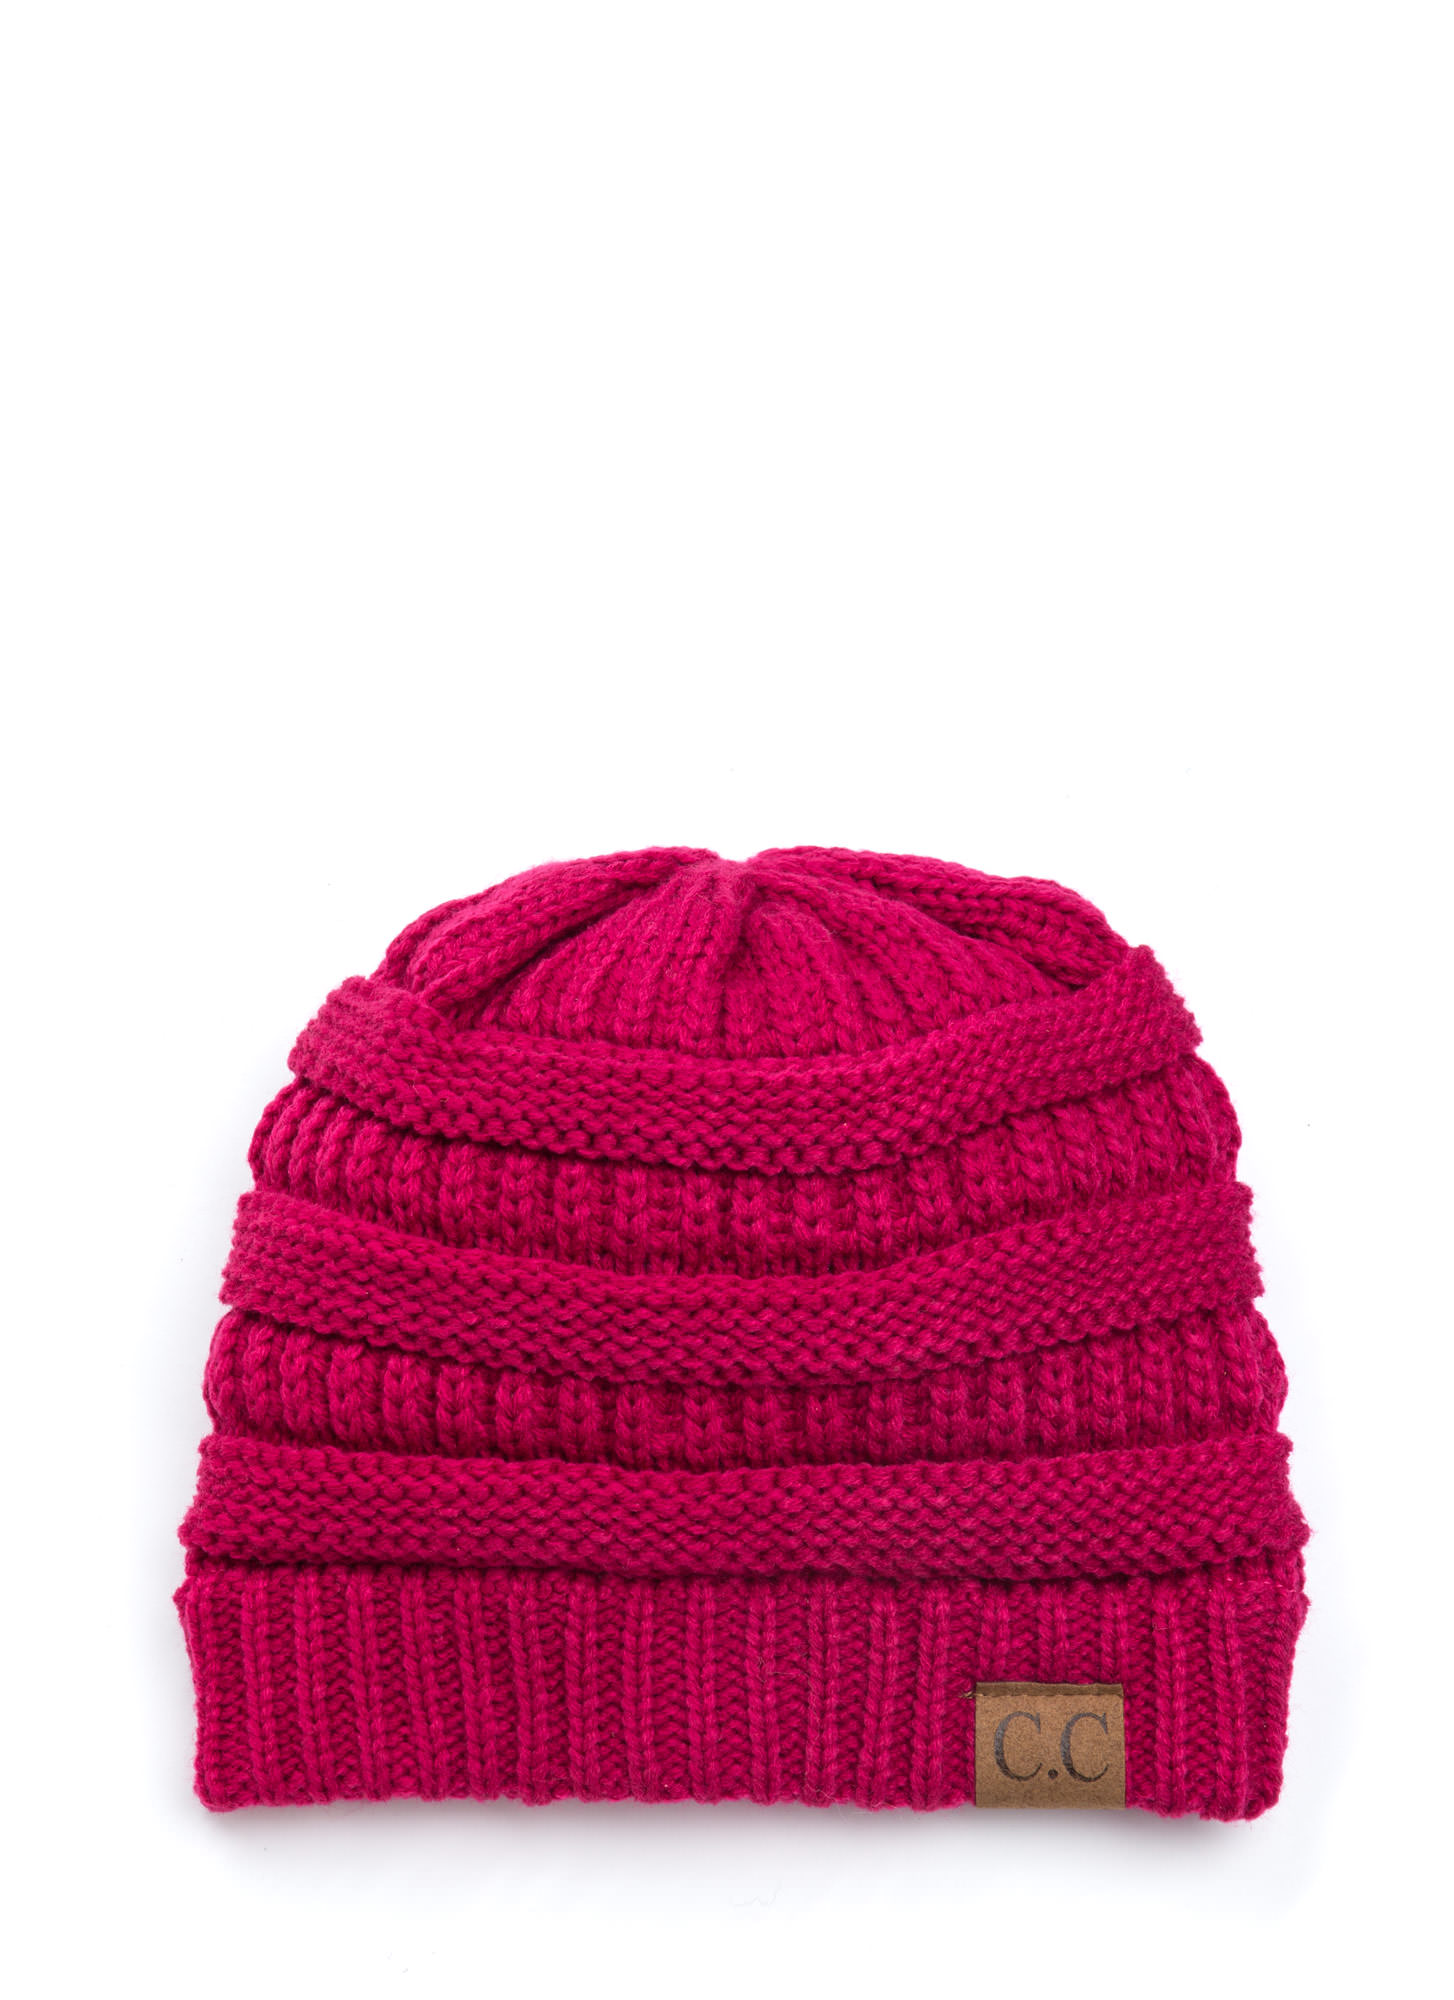 Cozy CC Cable Knit Beanie MAGENTA (Final Sale)